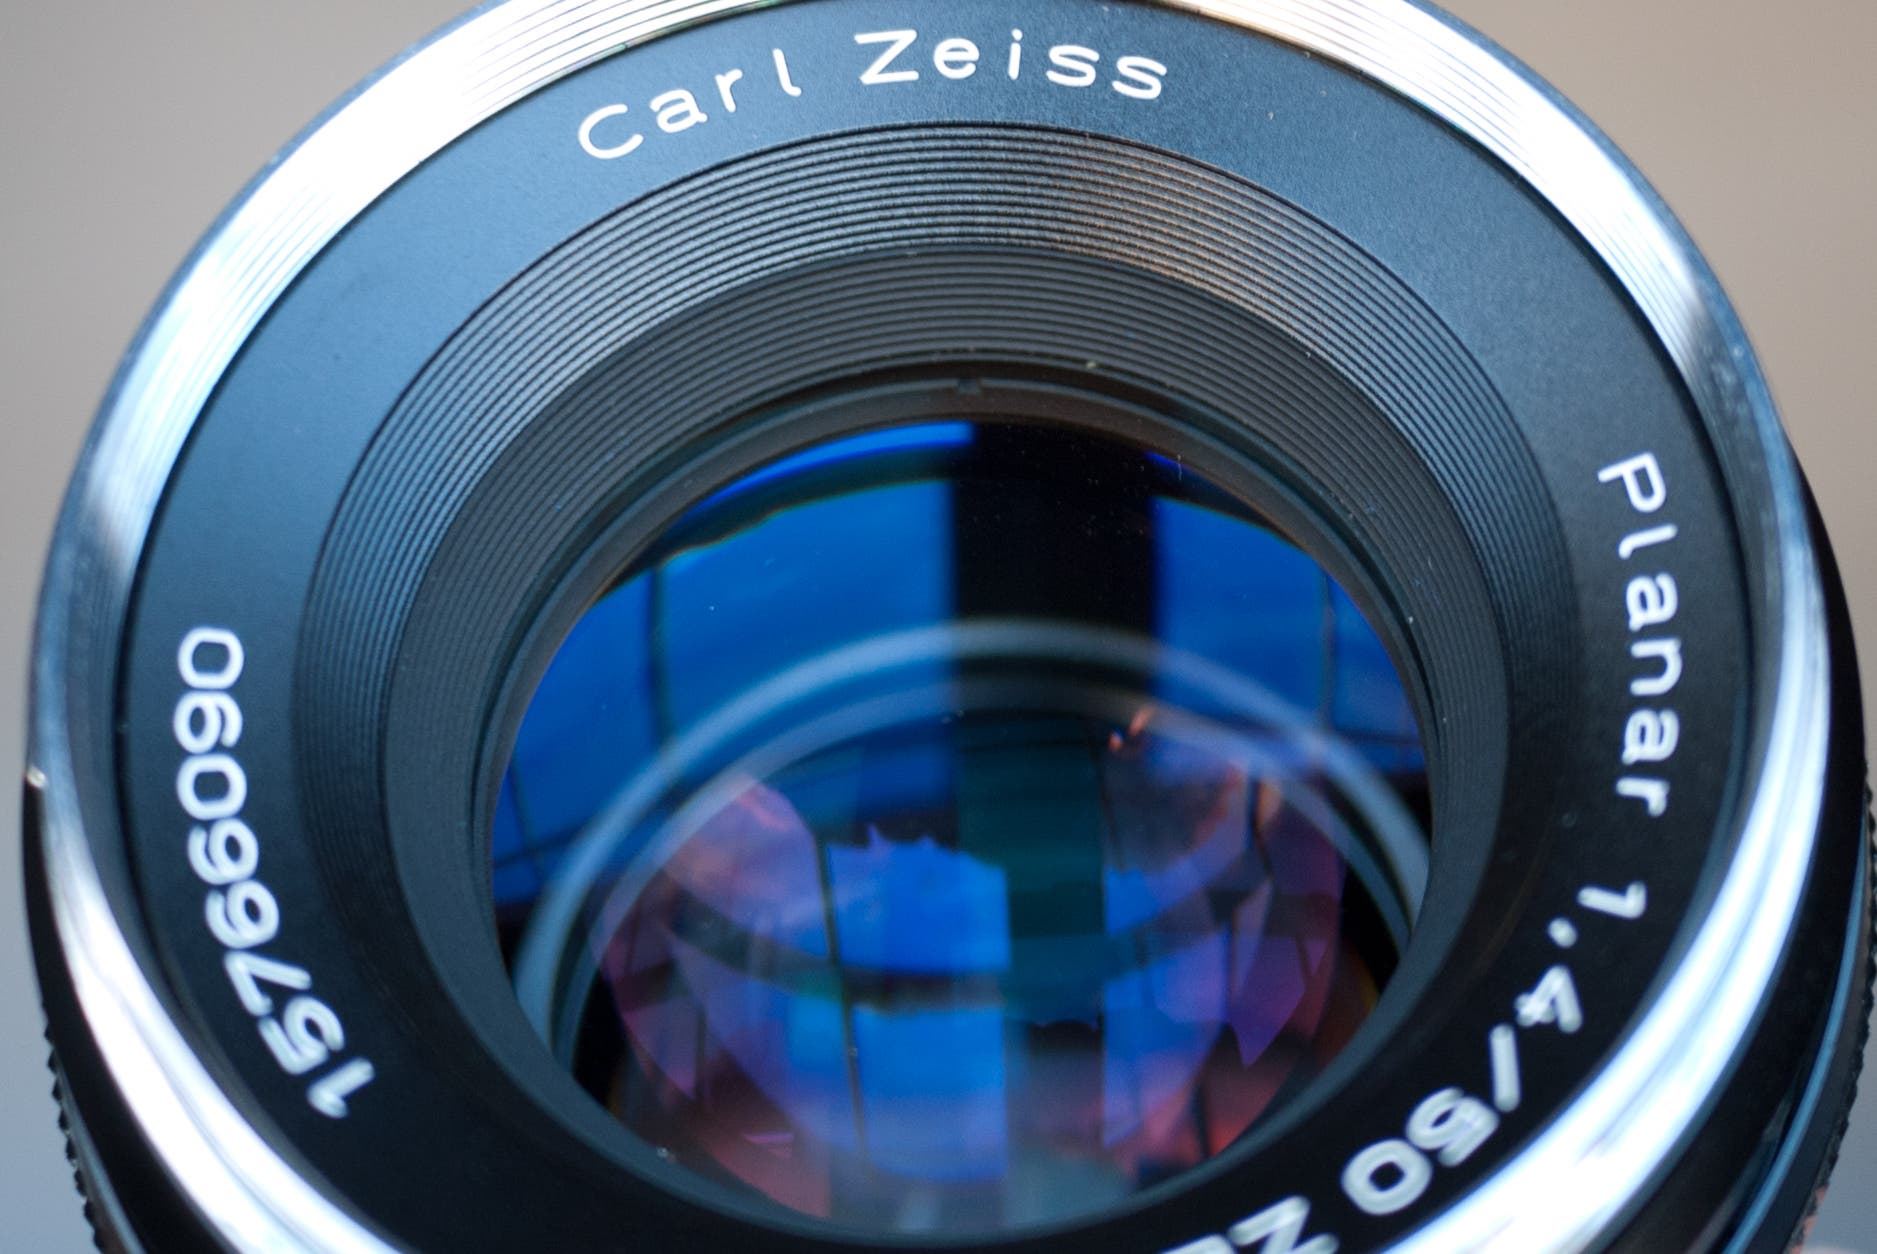 Review: Zeiss Planar T* 50mm f/1.4 ZE